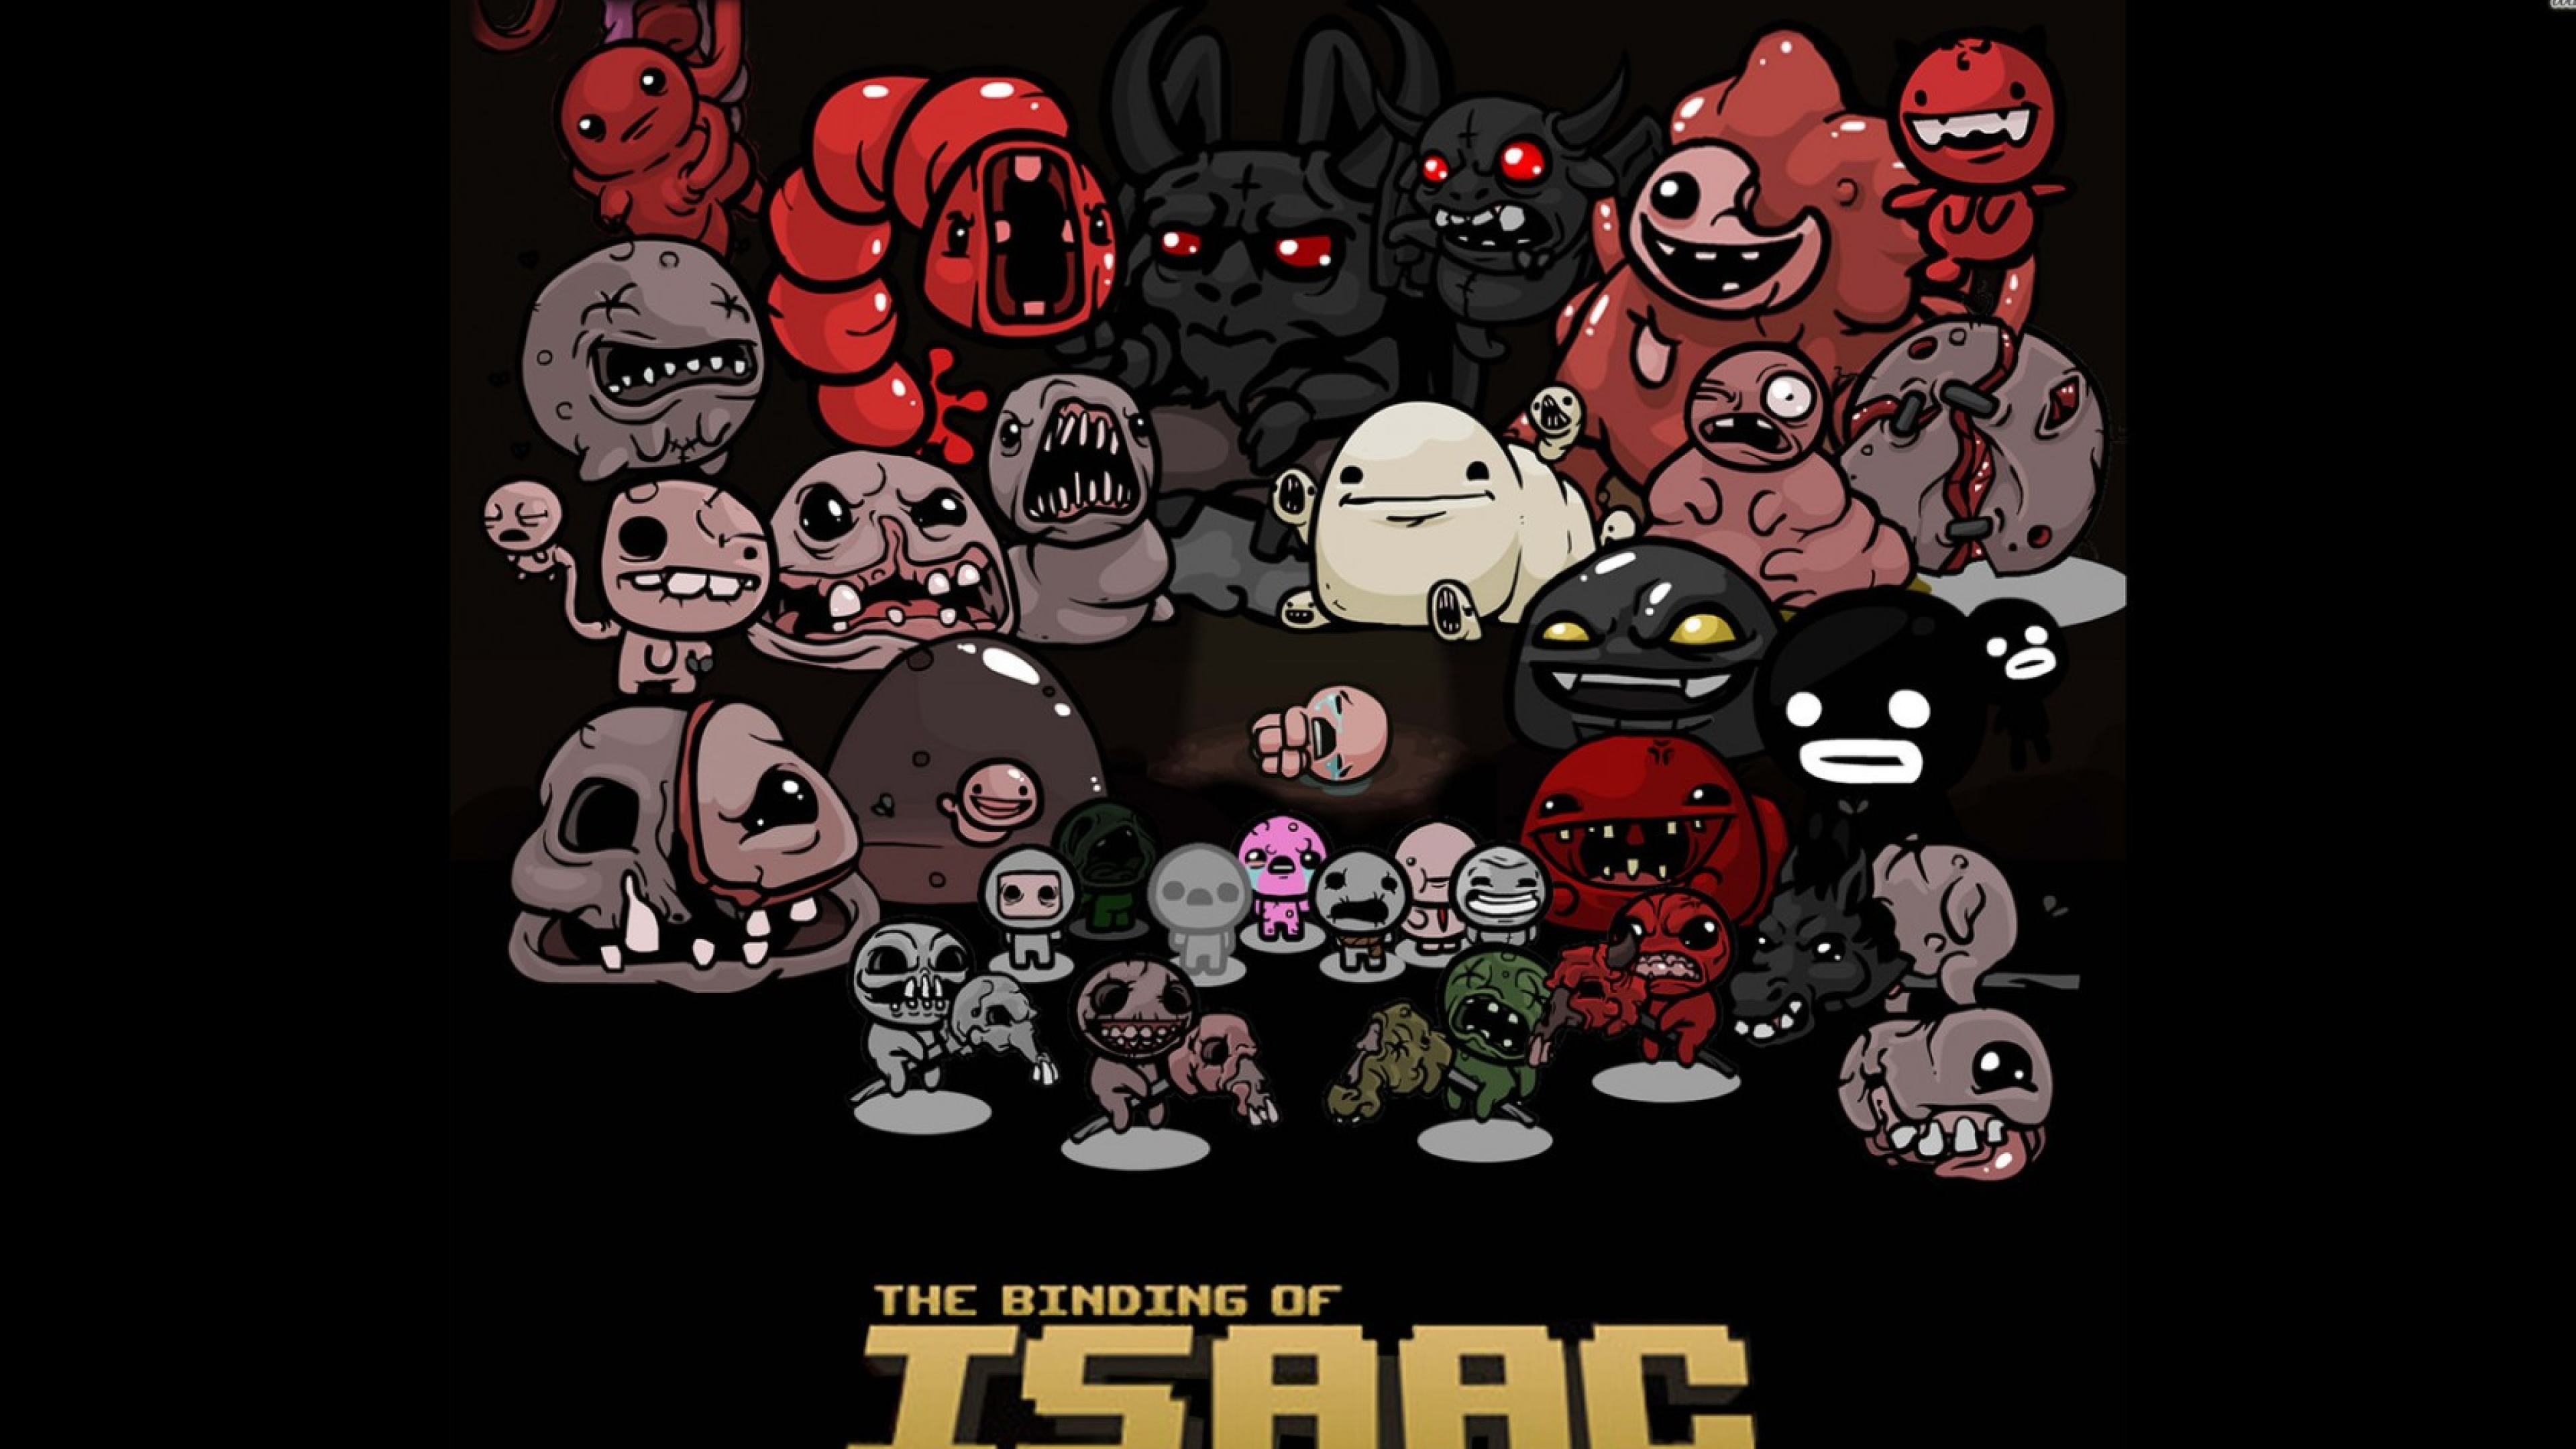 3840x2160 The Binding Of Isaac Indie Game 4k Wallpaper Hd Games